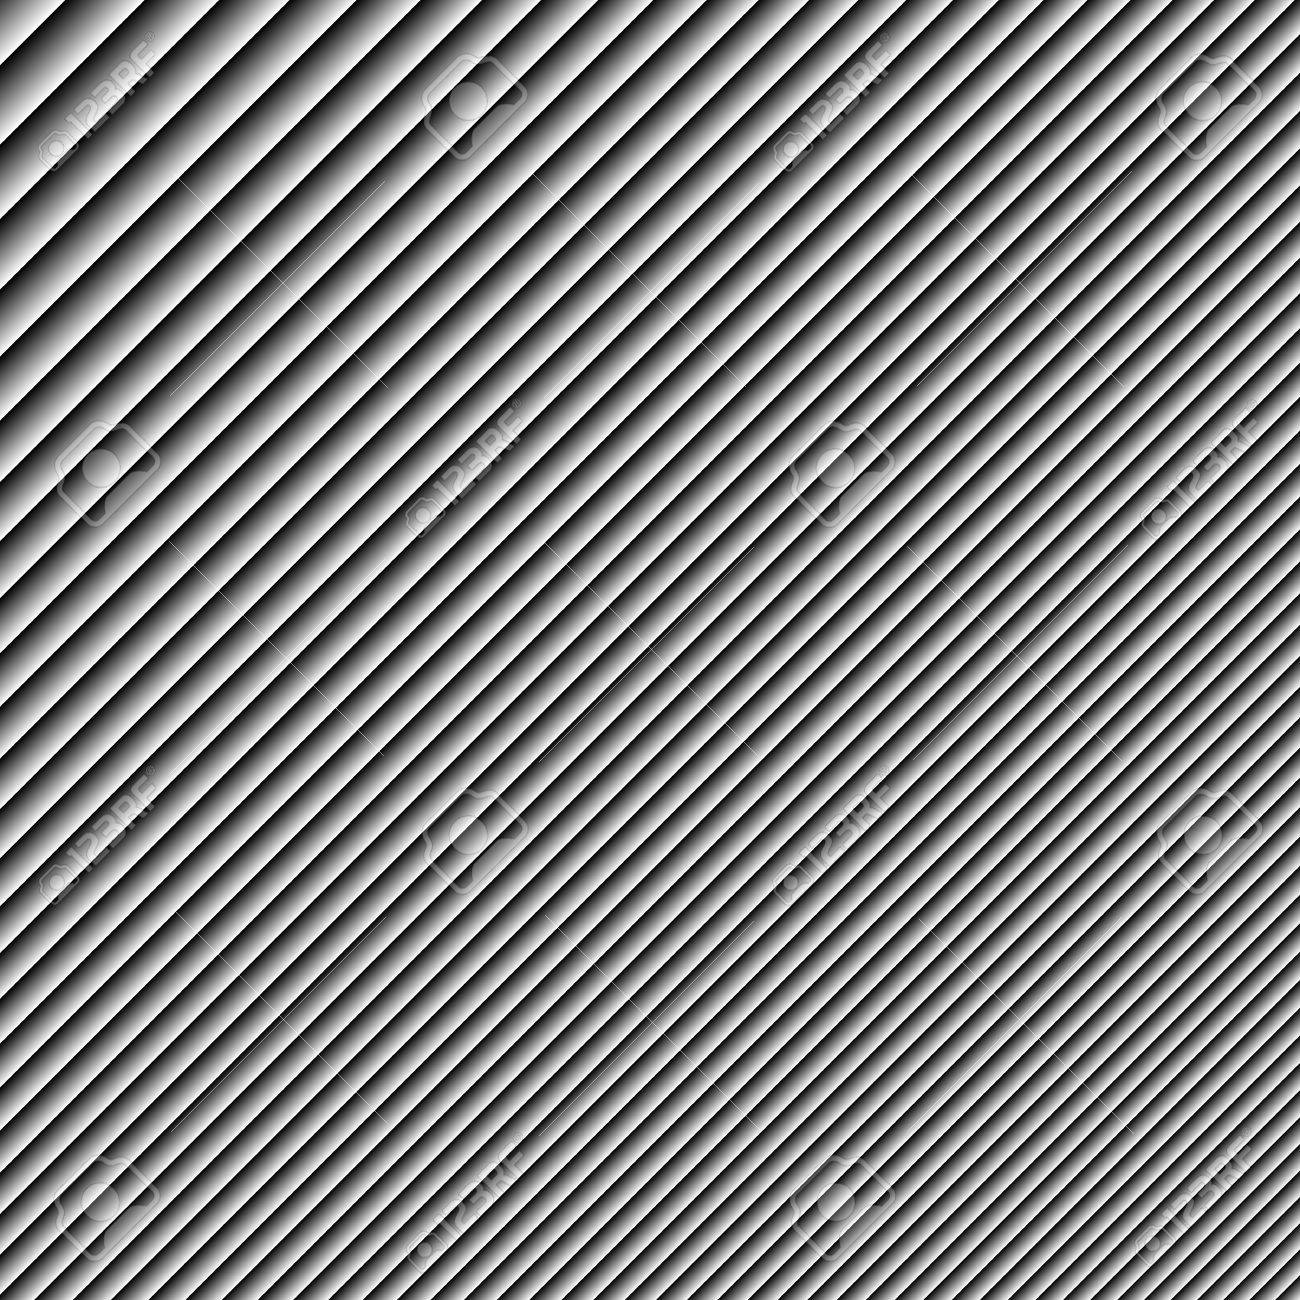 Background image linear gradient - Linear Gradient Pattern Almost Colorless With Lines And Gradients Pattern Texture Background